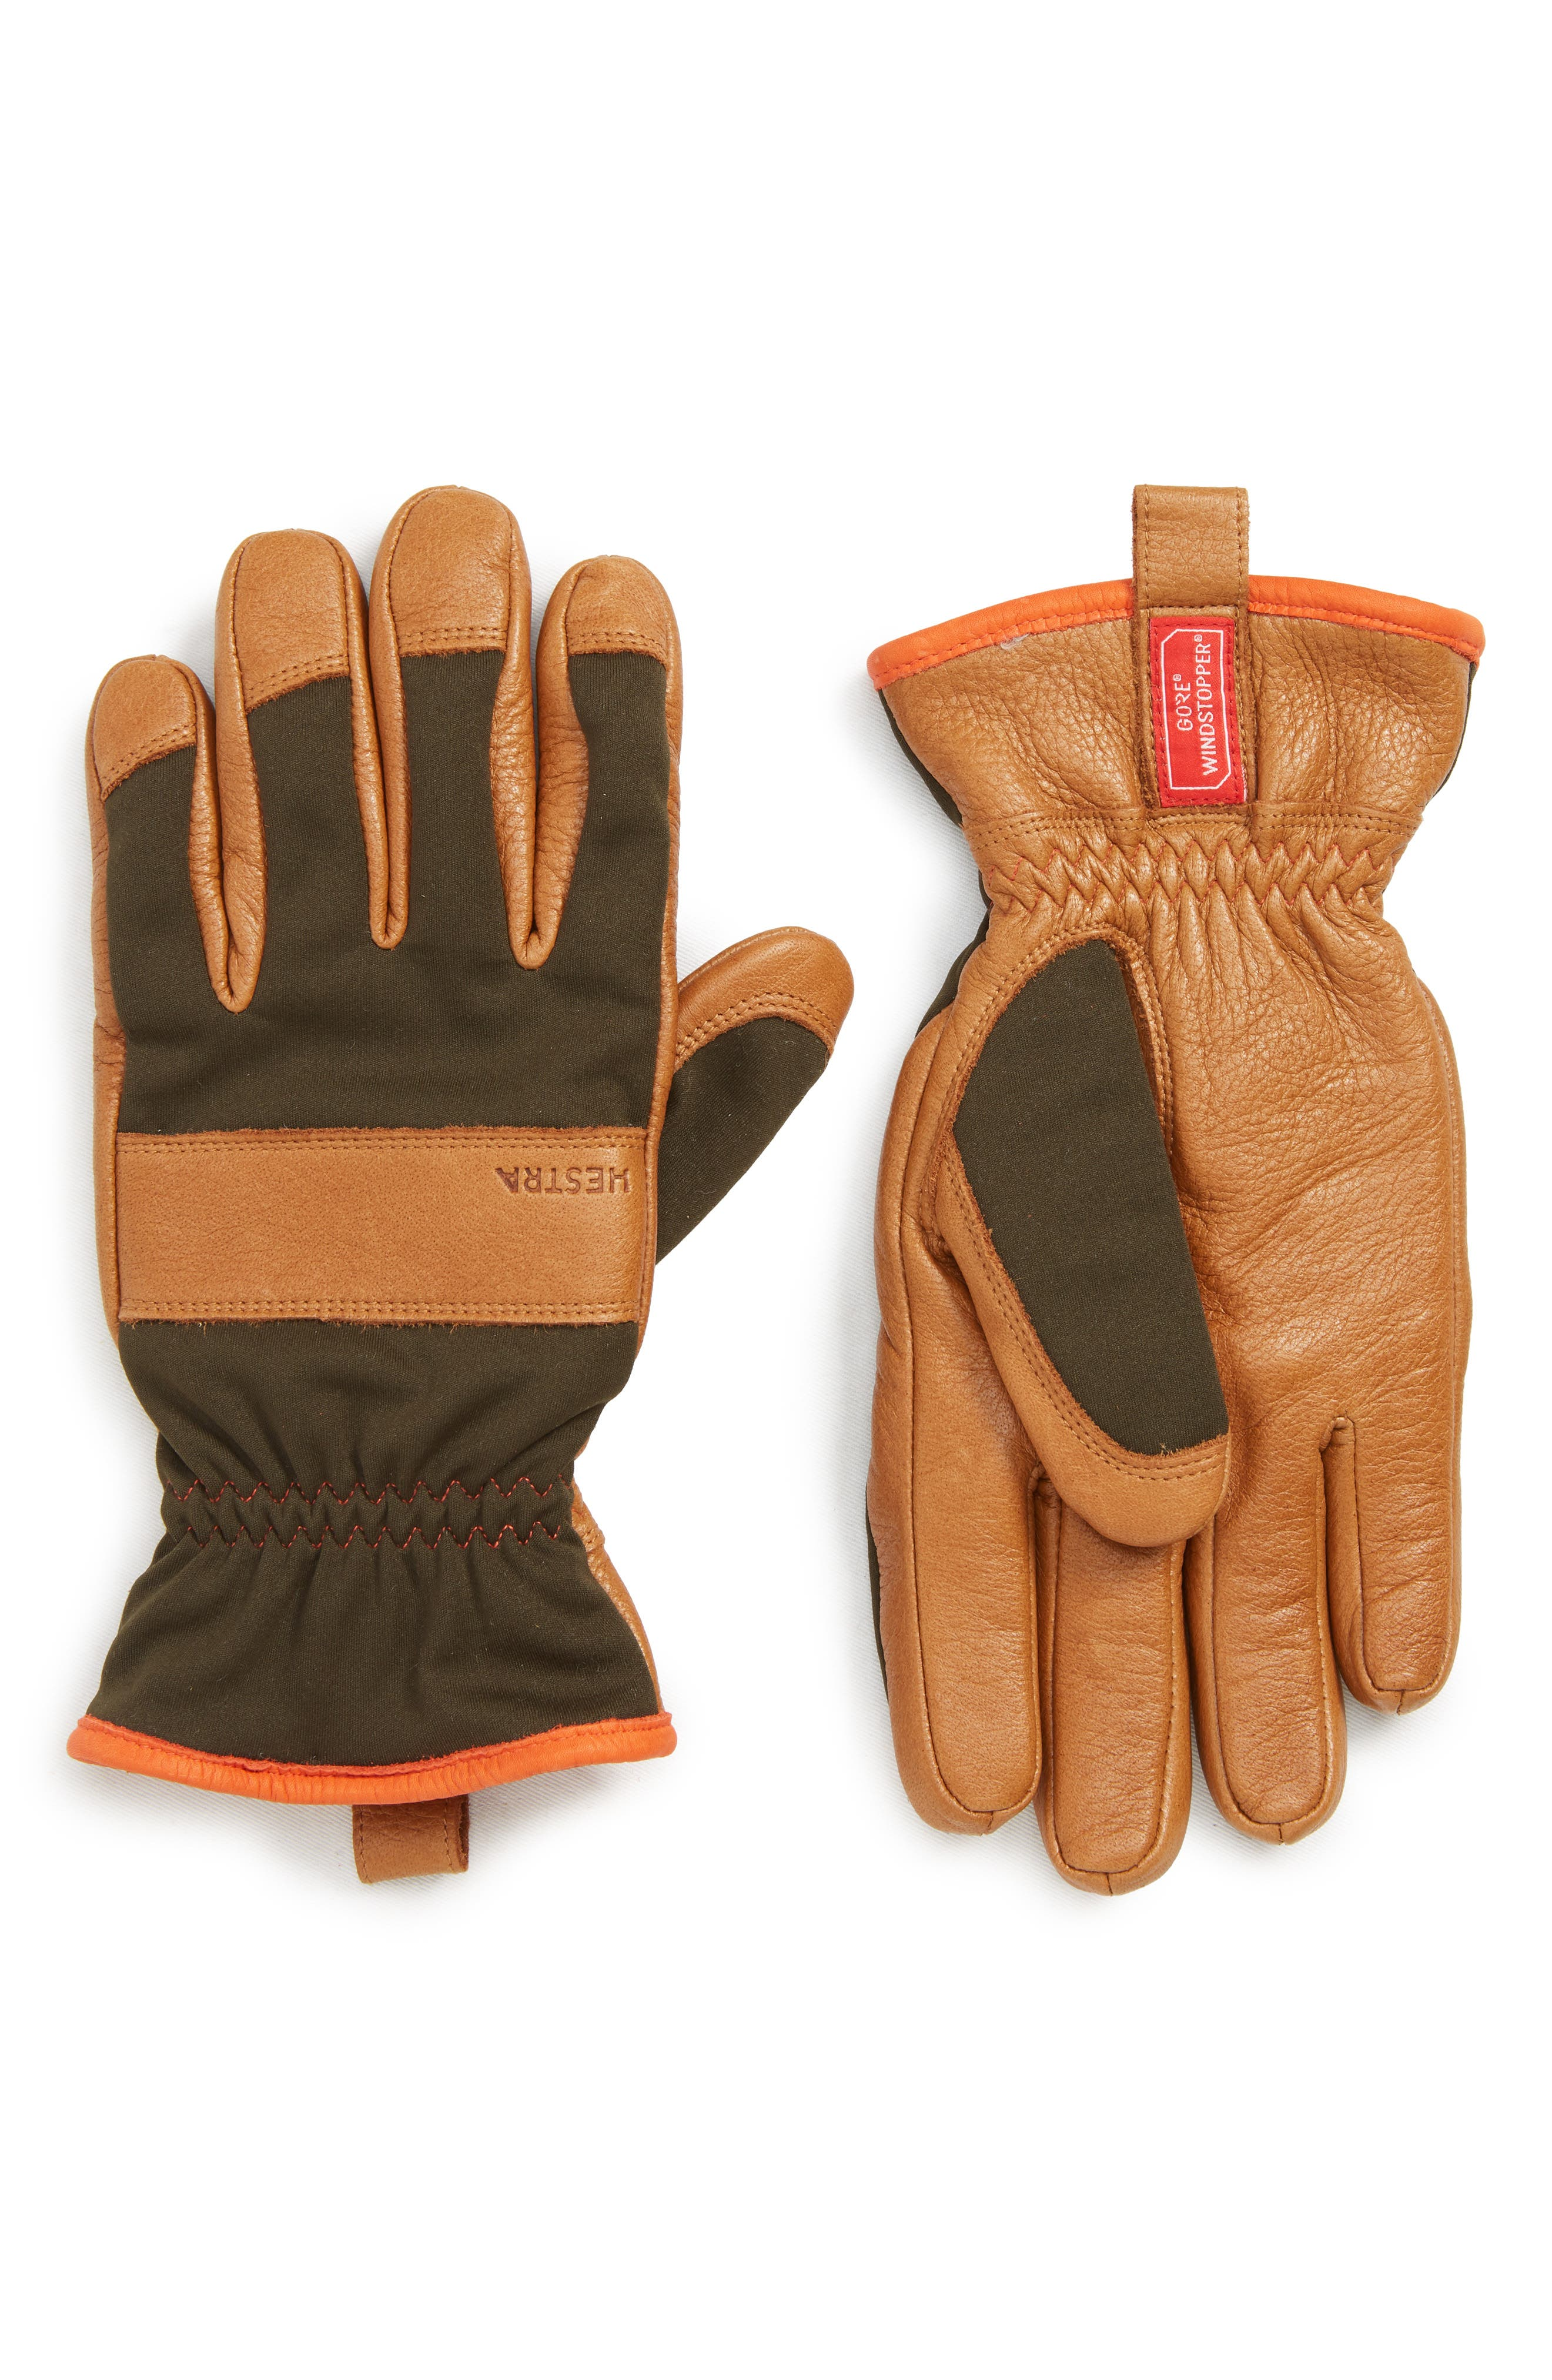 'Tor' Leather Gloves,                             Main thumbnail 1, color,                             DARK FOREST/ NATURAL YELLOW